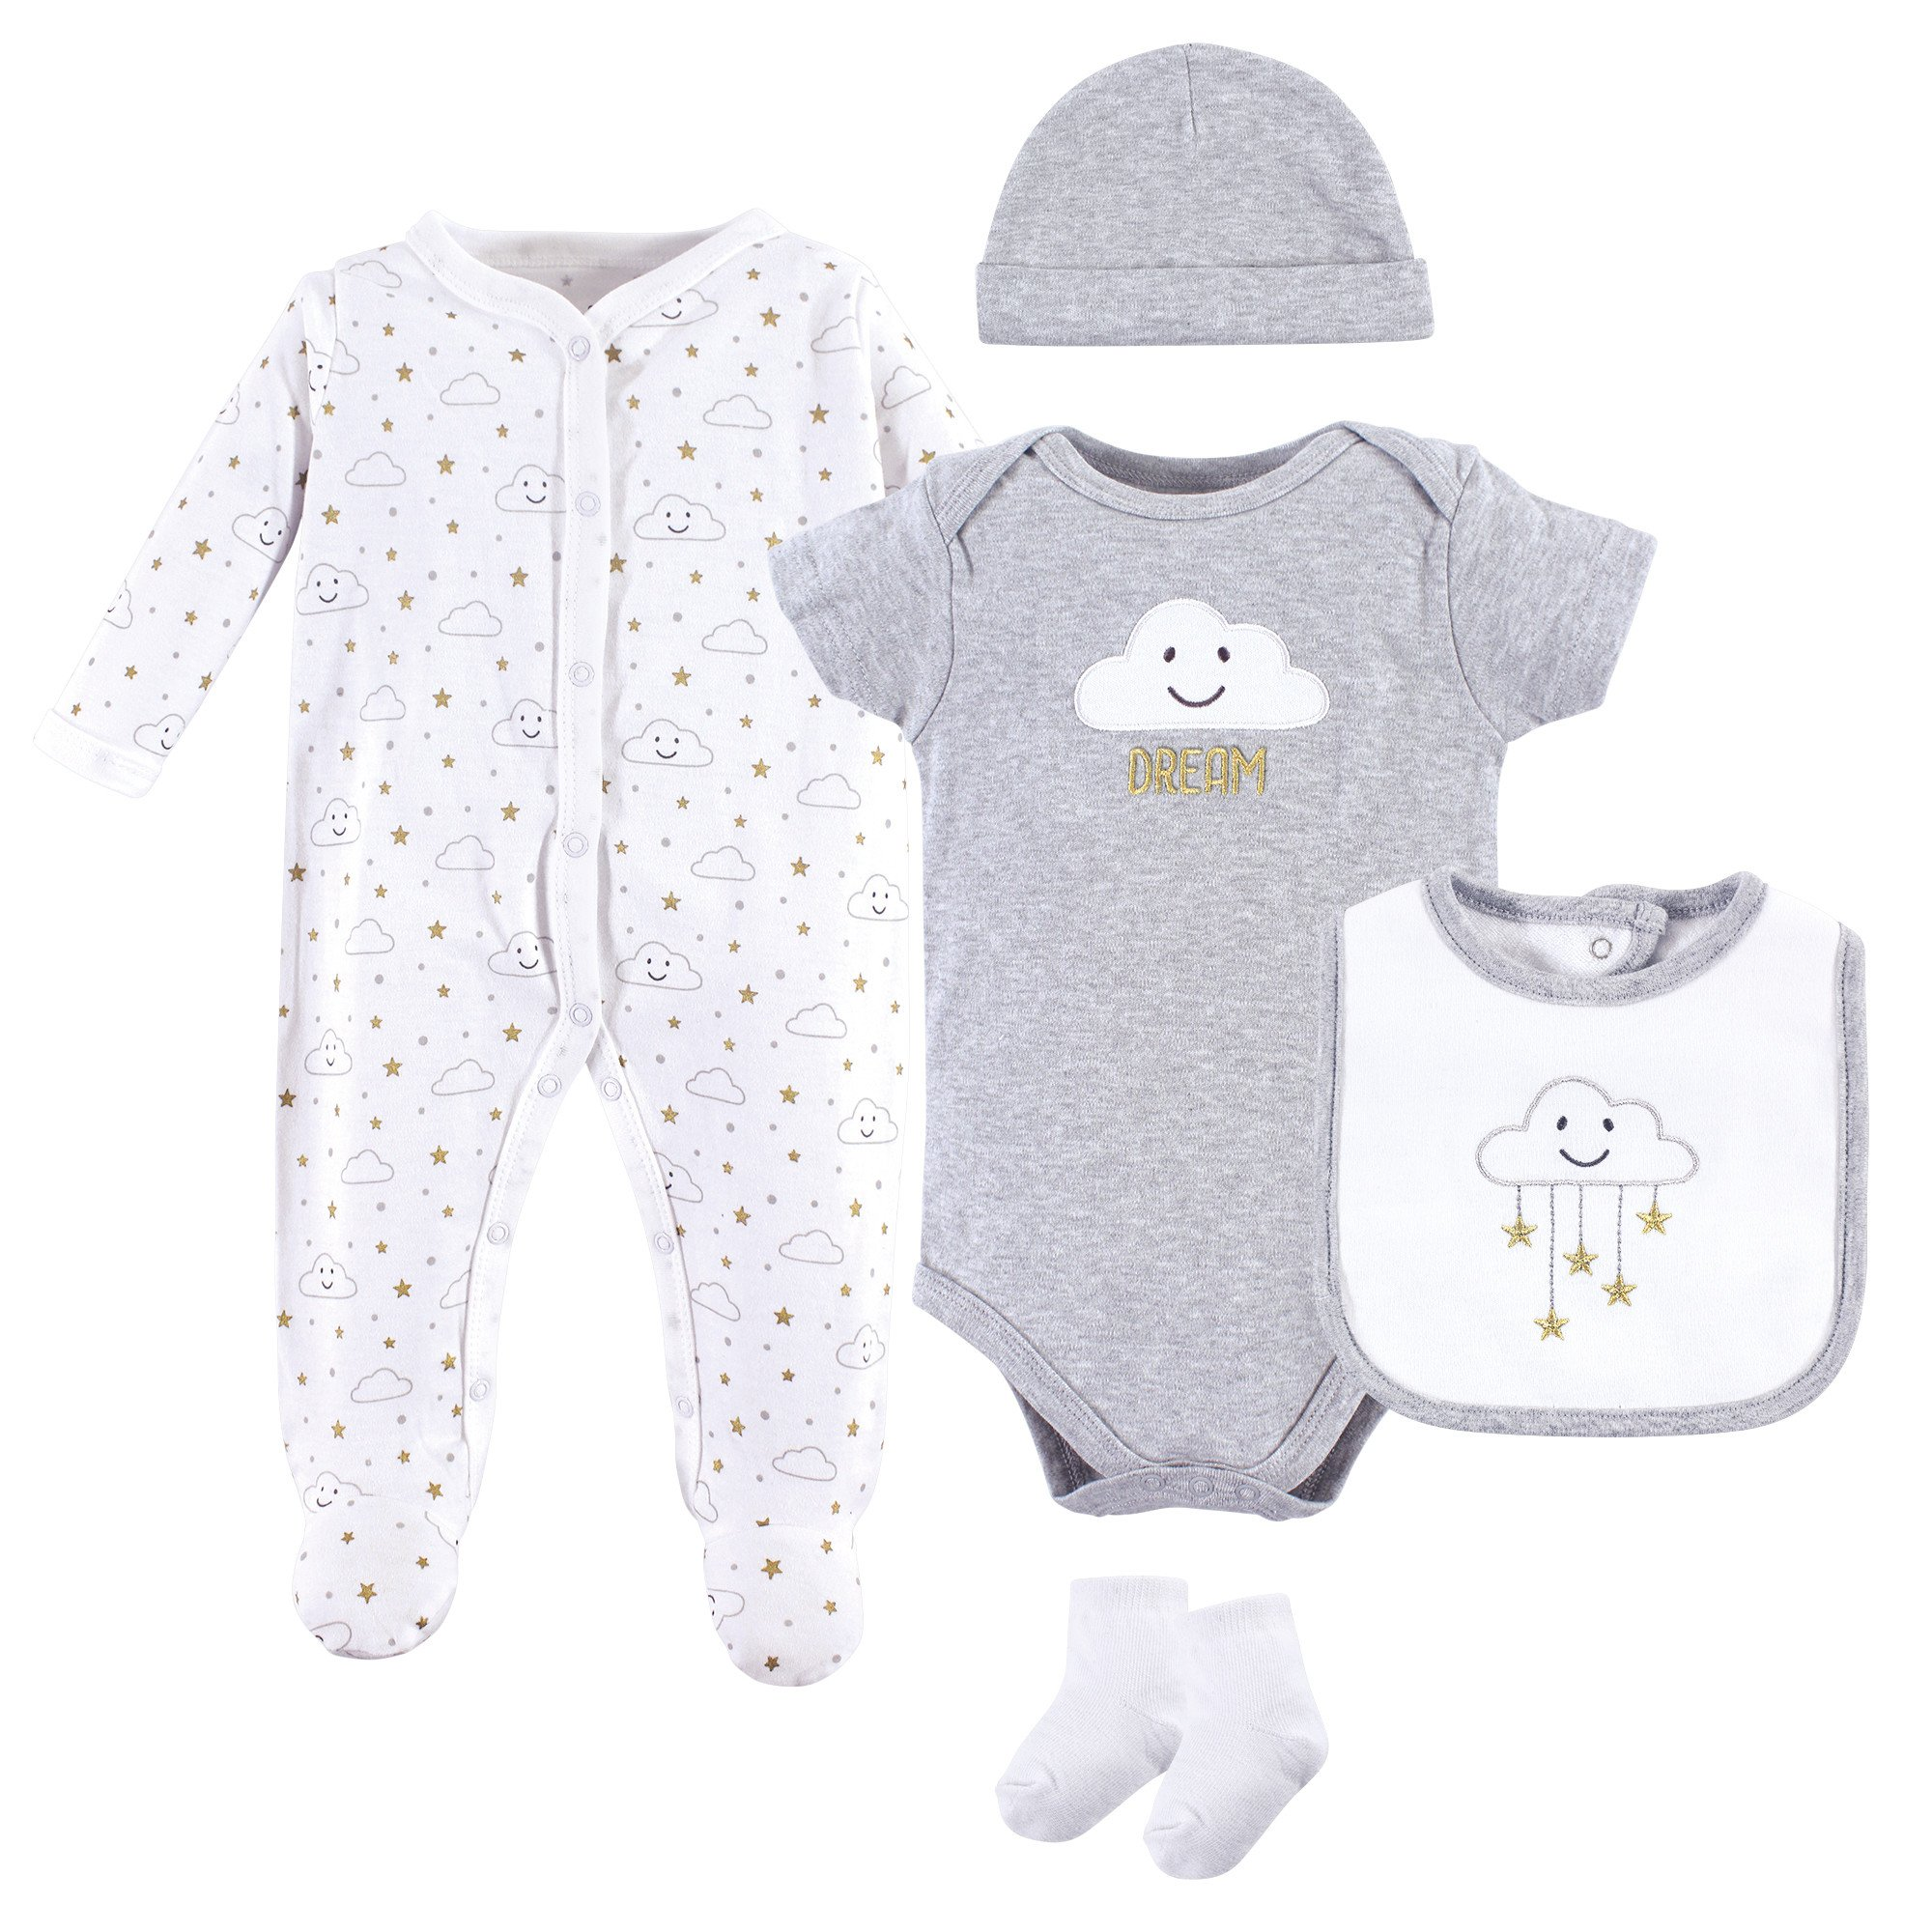 Hudson Baby Baby Multi Piece Clothing Set, Gray Clouds 5 Piece, 3-6 Months